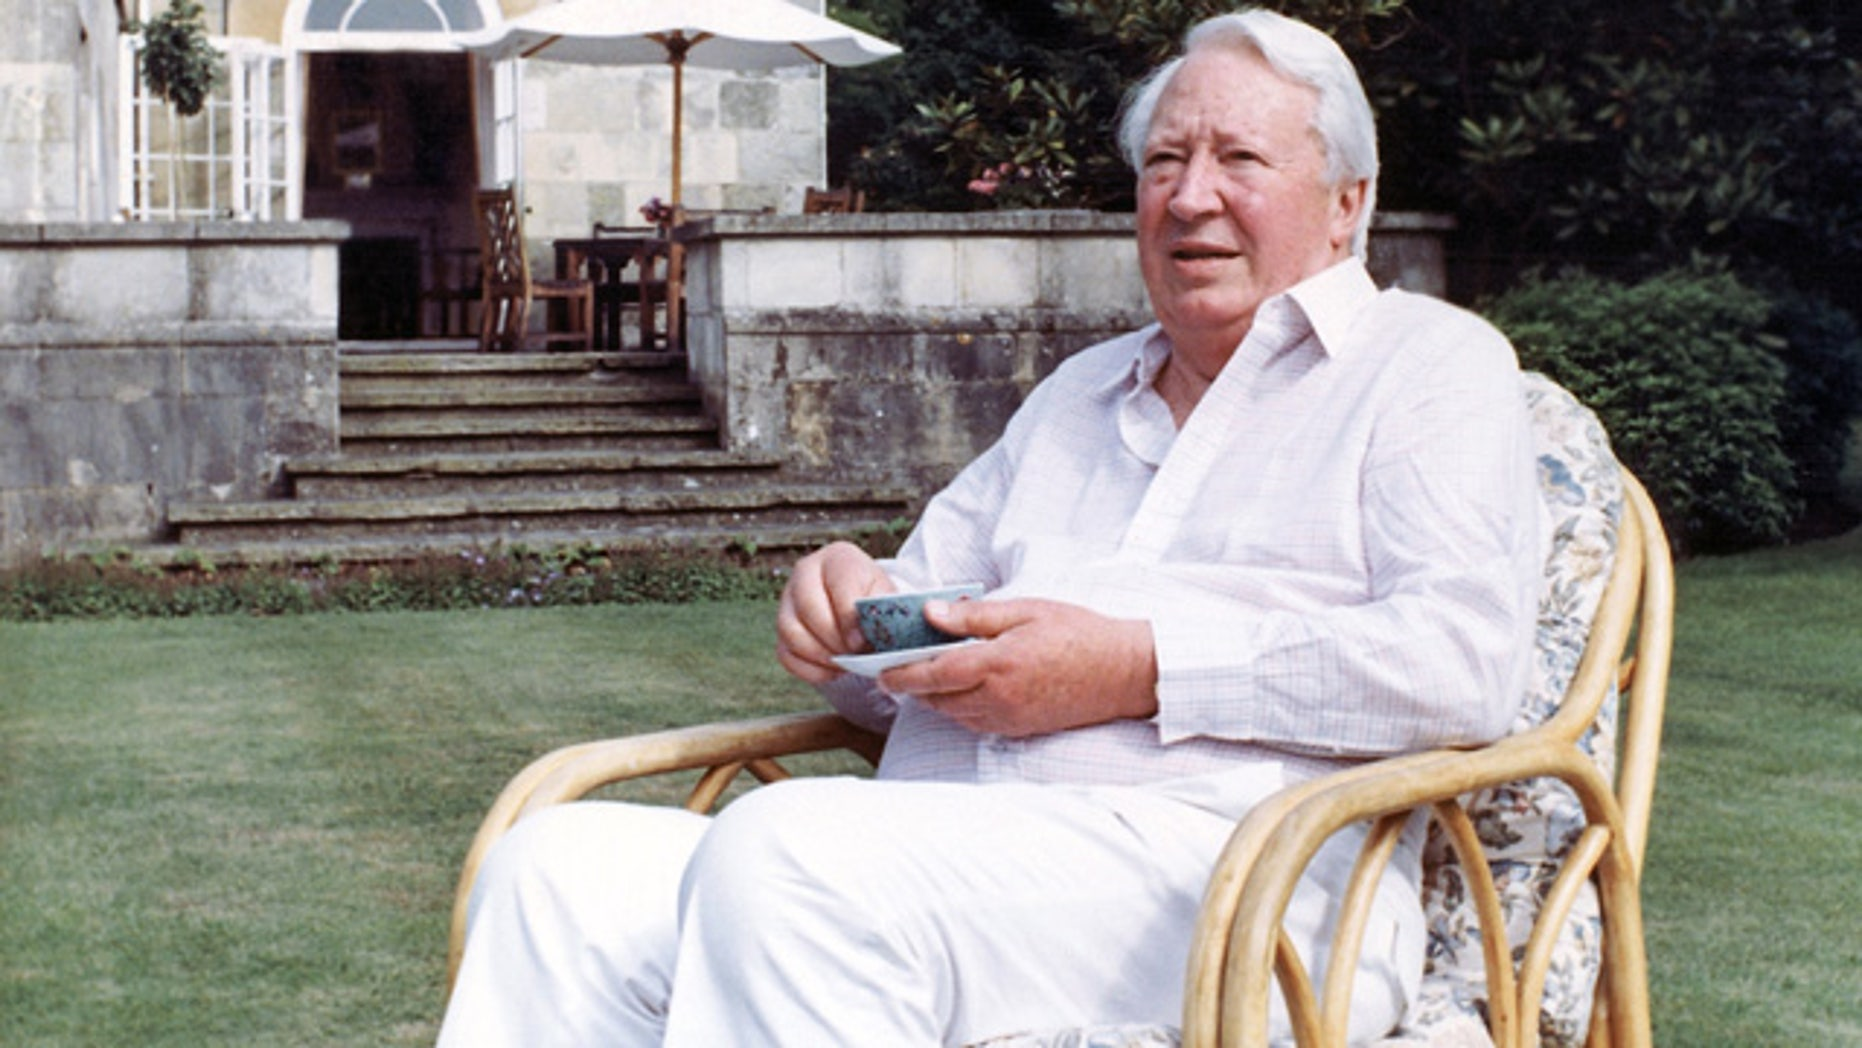 FILE - This is a July 19, 1989 file photo of former  British Prime Minister Edward Heath as he takes tea in the garden of his home in Salisbury, England. (AP Photo/Martin Cleaver/File)